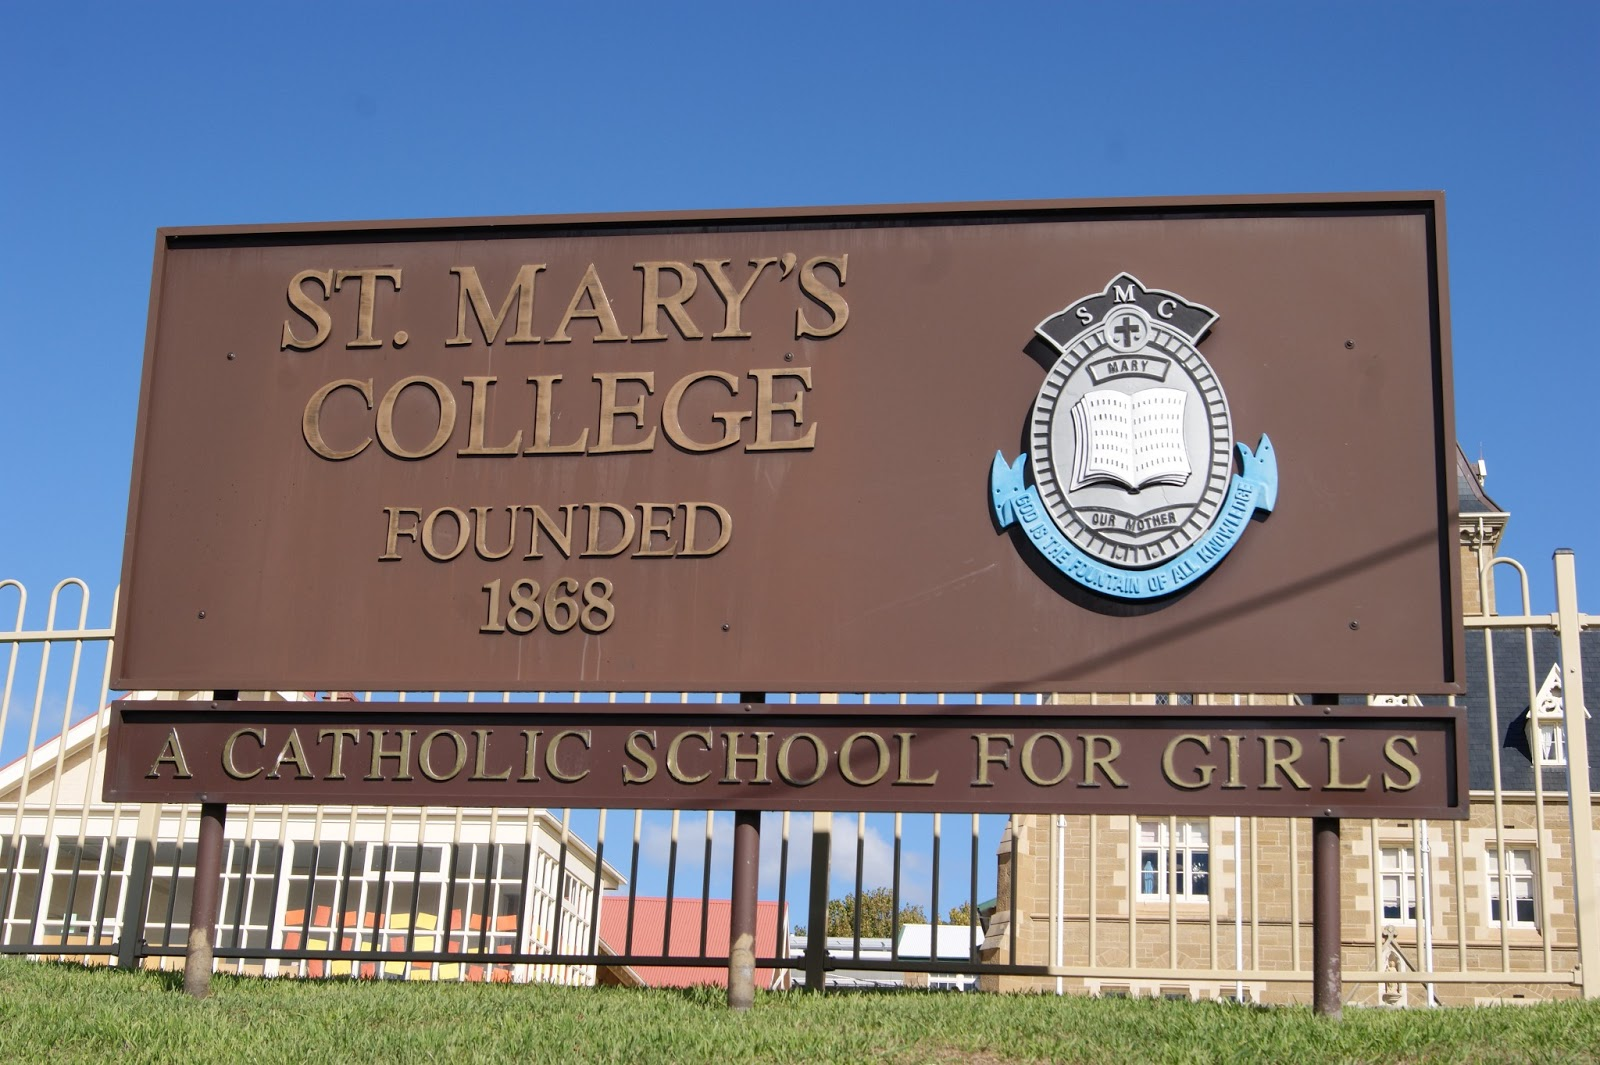 On The Convict Trail: St Mary's College, Hobart